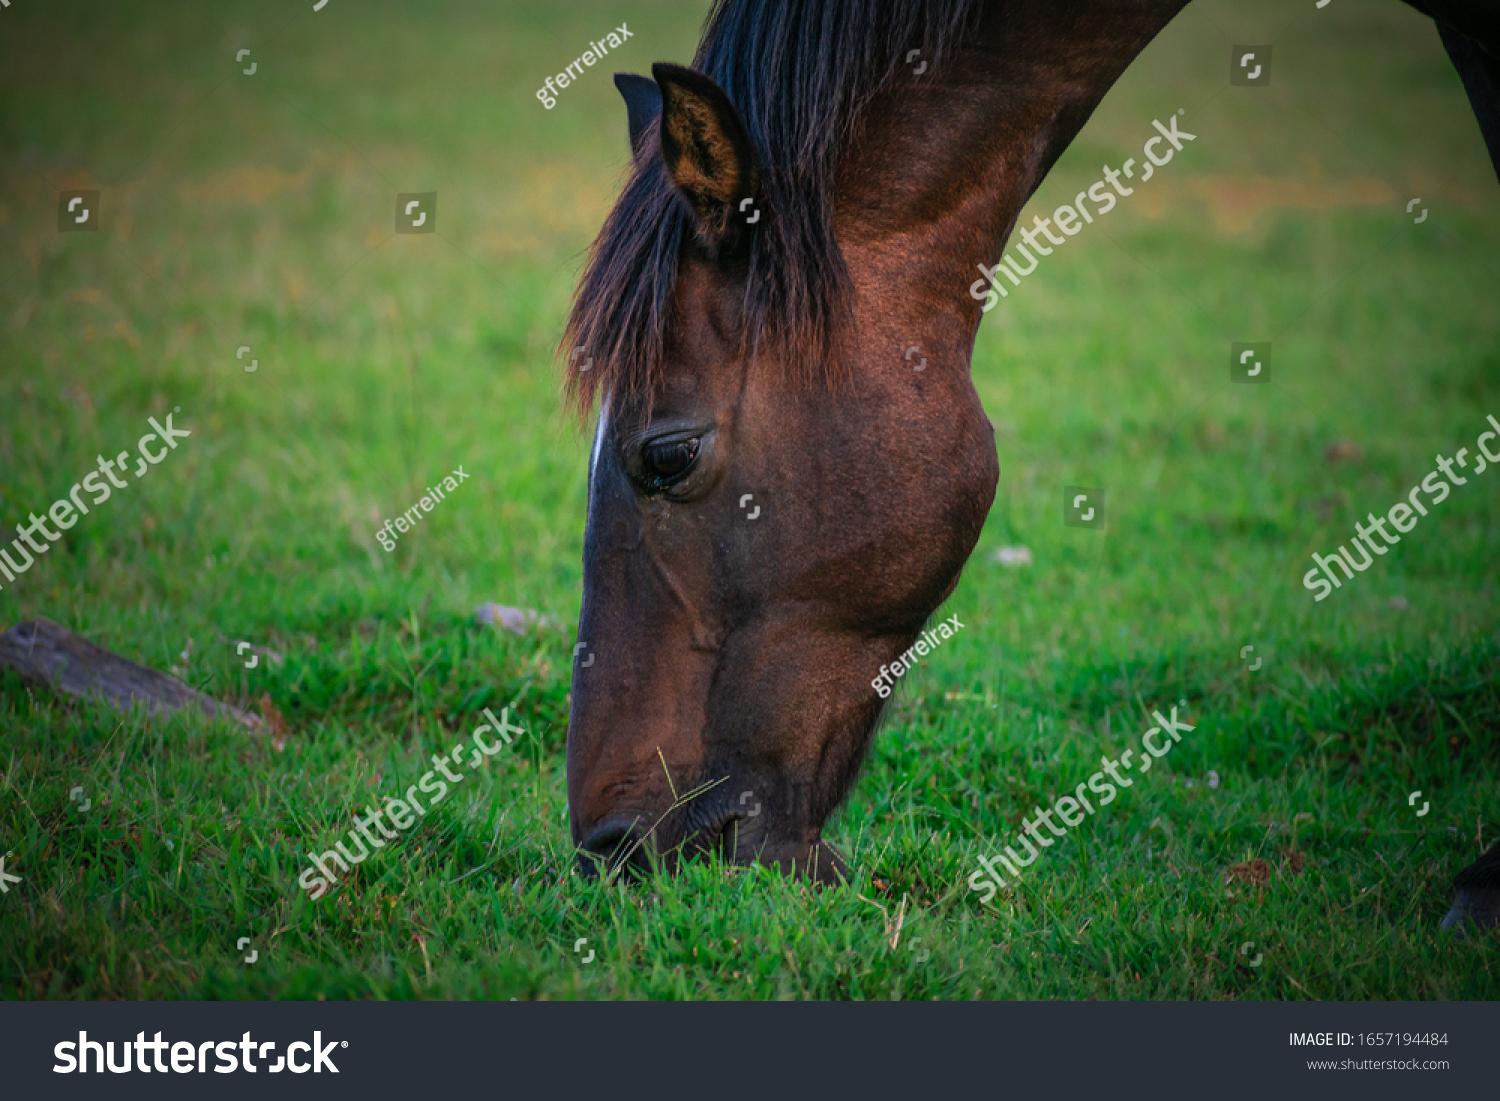 stock-photo-a-brown-horse-in-nature-1657